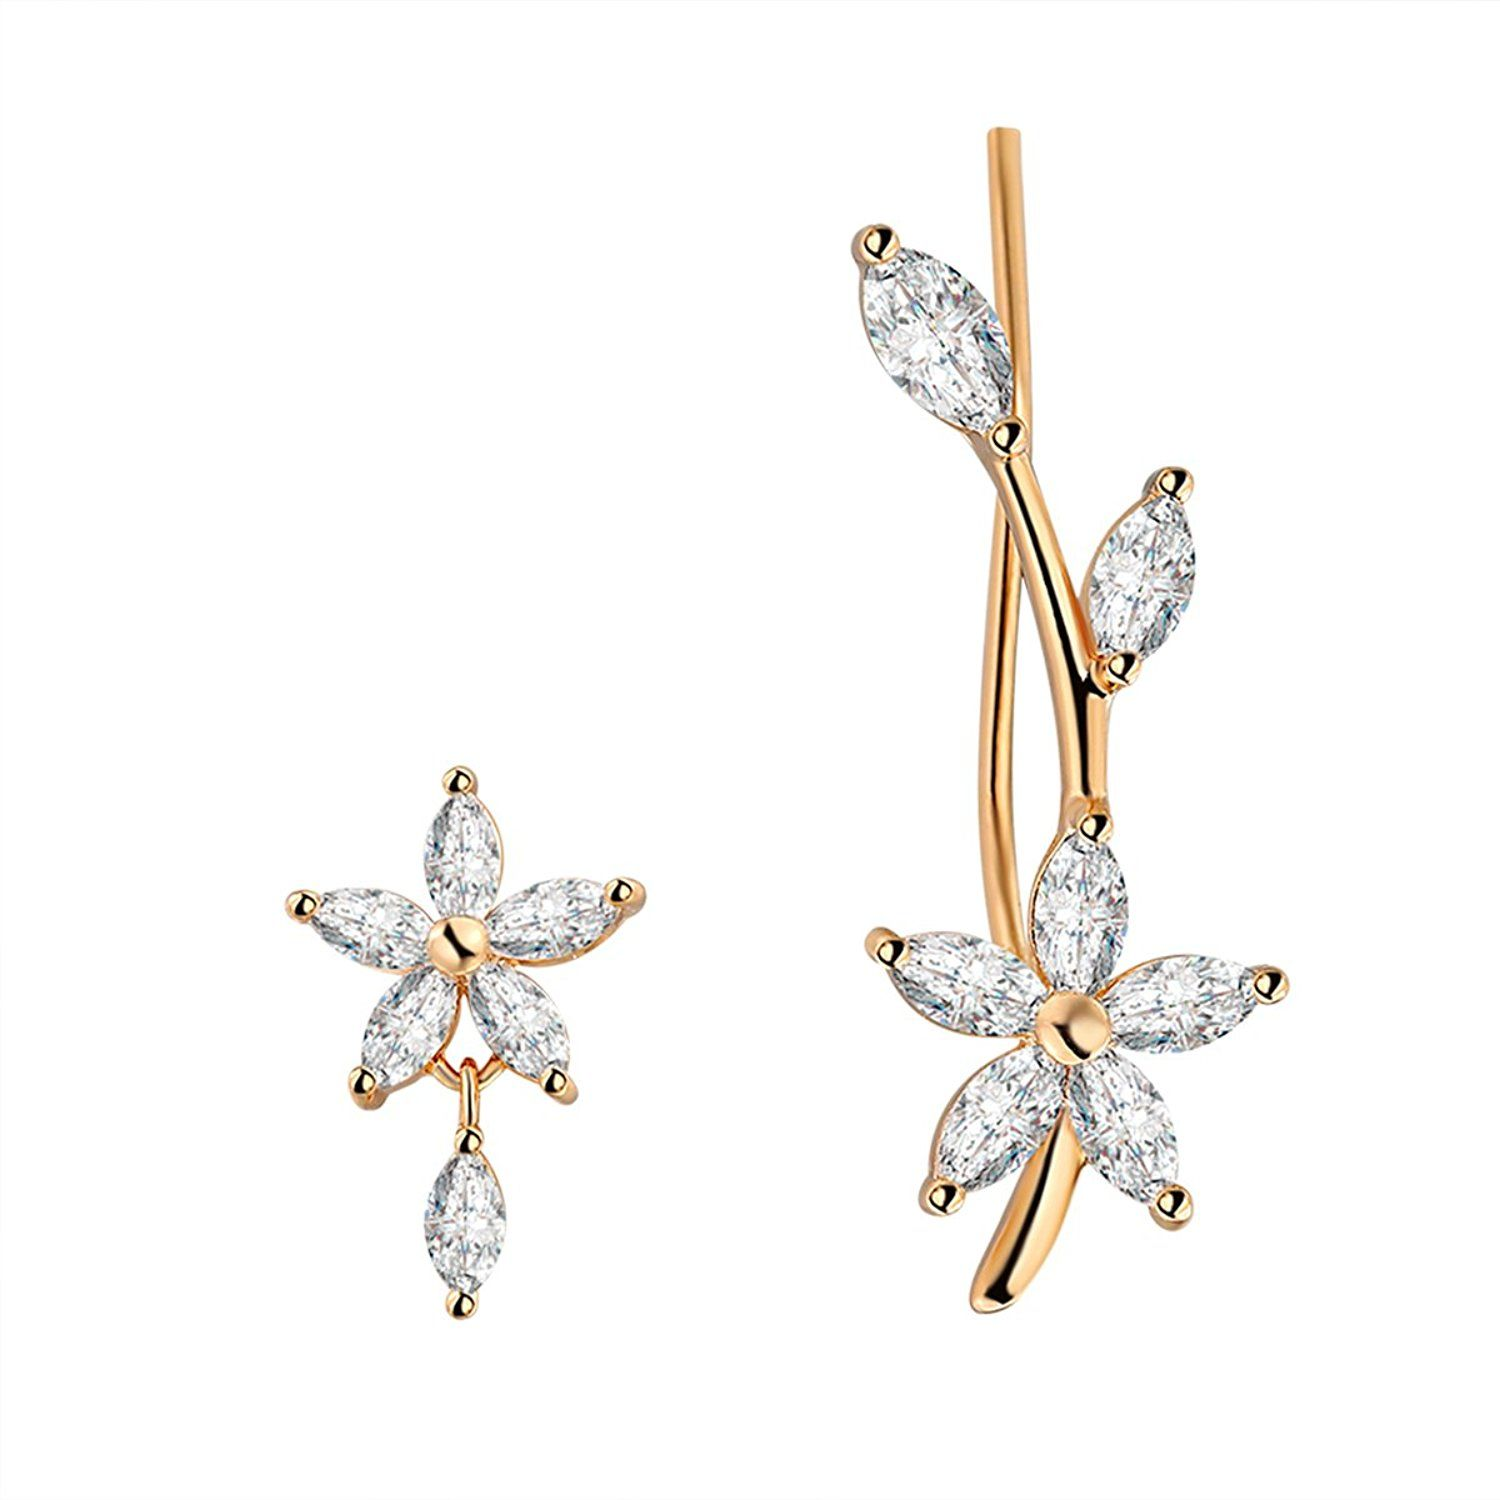 Chicinside Cubic Zirconia Flower Branch Ear Cuff Pins Earrings Set